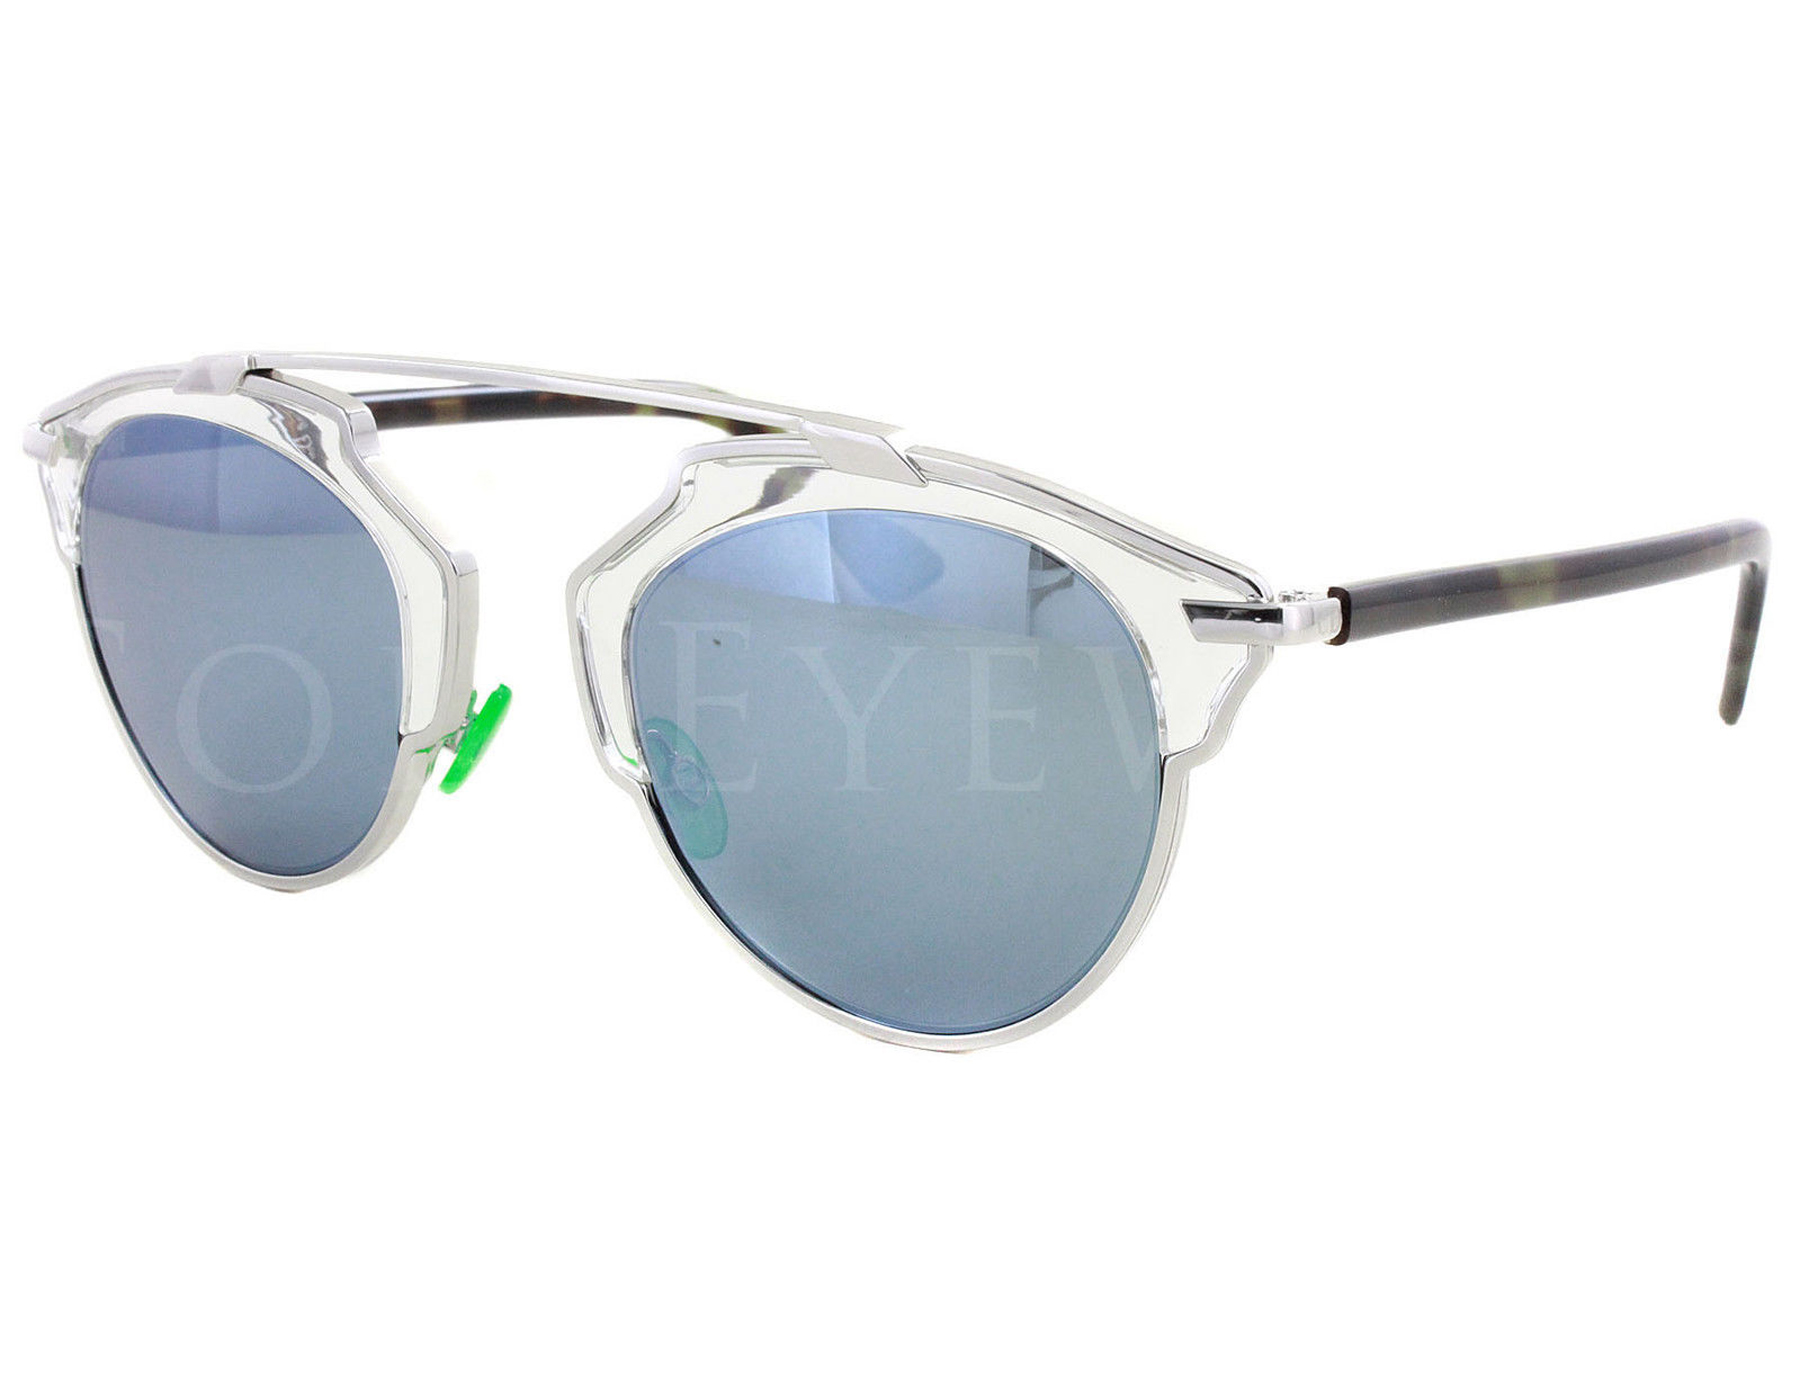 fff7c8bd0f Details about NEW Christian Dior So Real NSYT7 Palladium Havana   Turquoise Mirror  Sunglasses